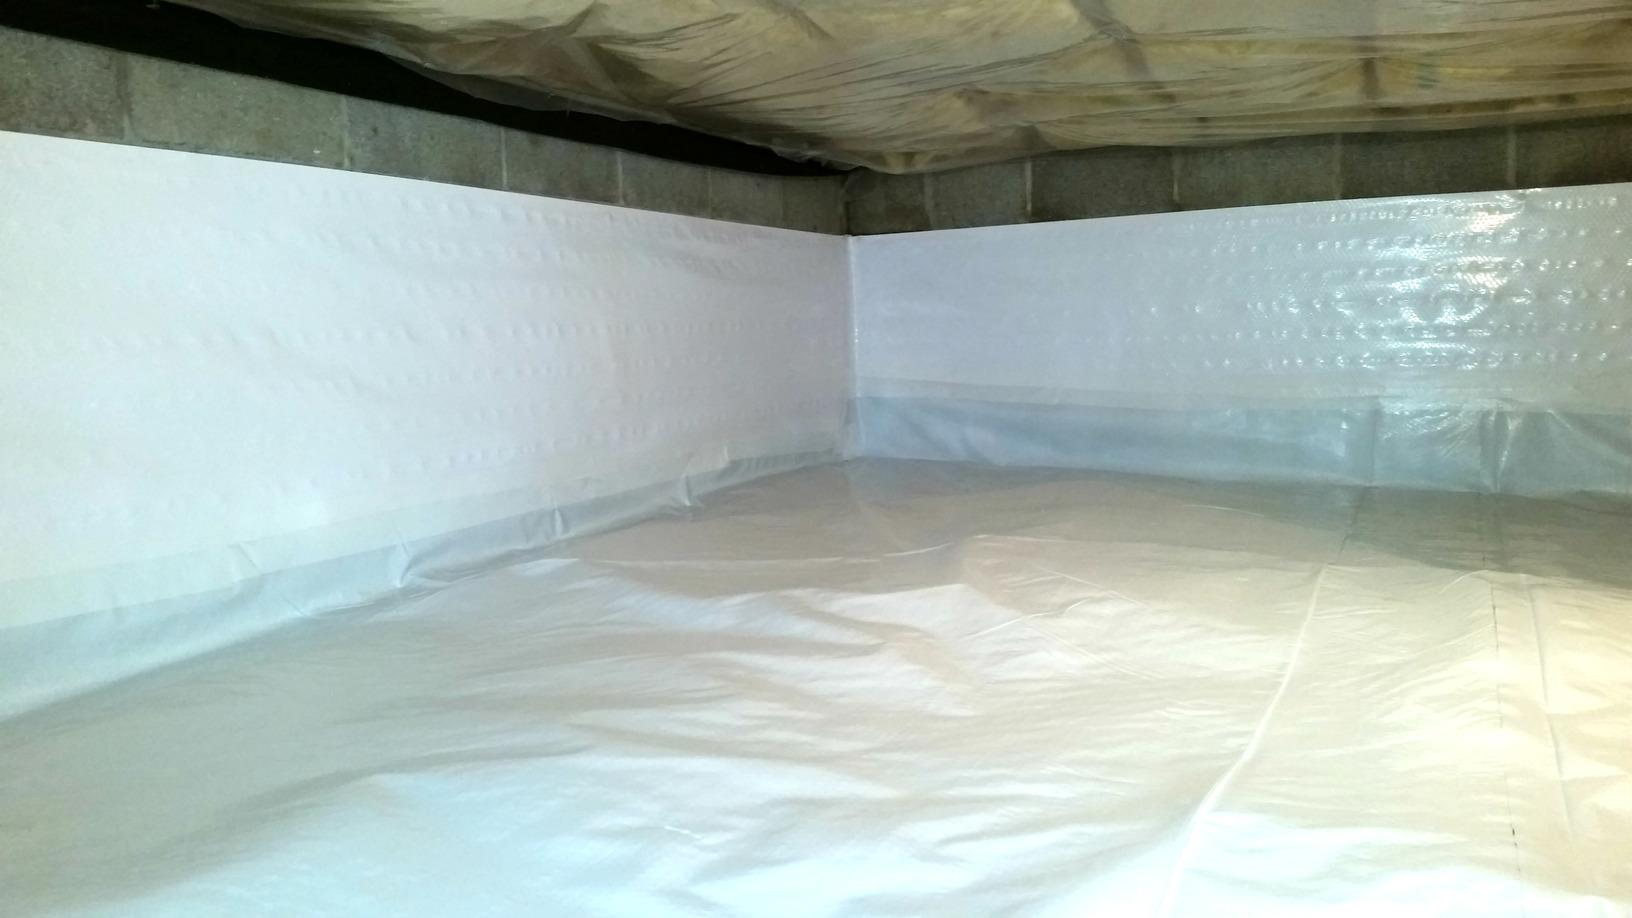 CleanSpace is a thick, durable liner that also has an antimicrobial additive that wards off mold growth.